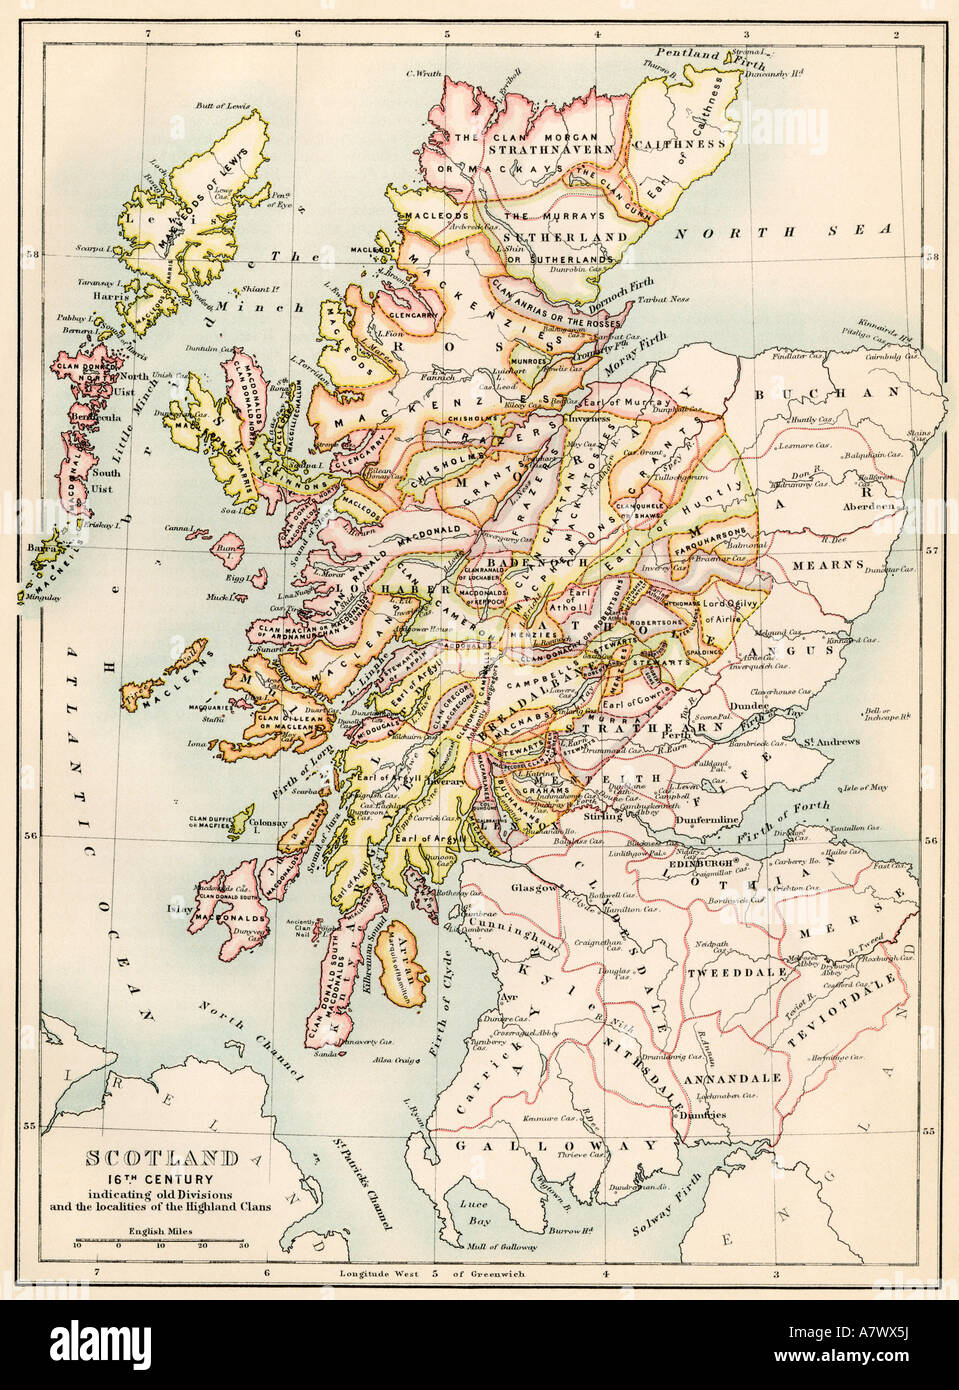 Map of Scotland in the 1520s showing the territories of the Highland clans.  Color lithograph